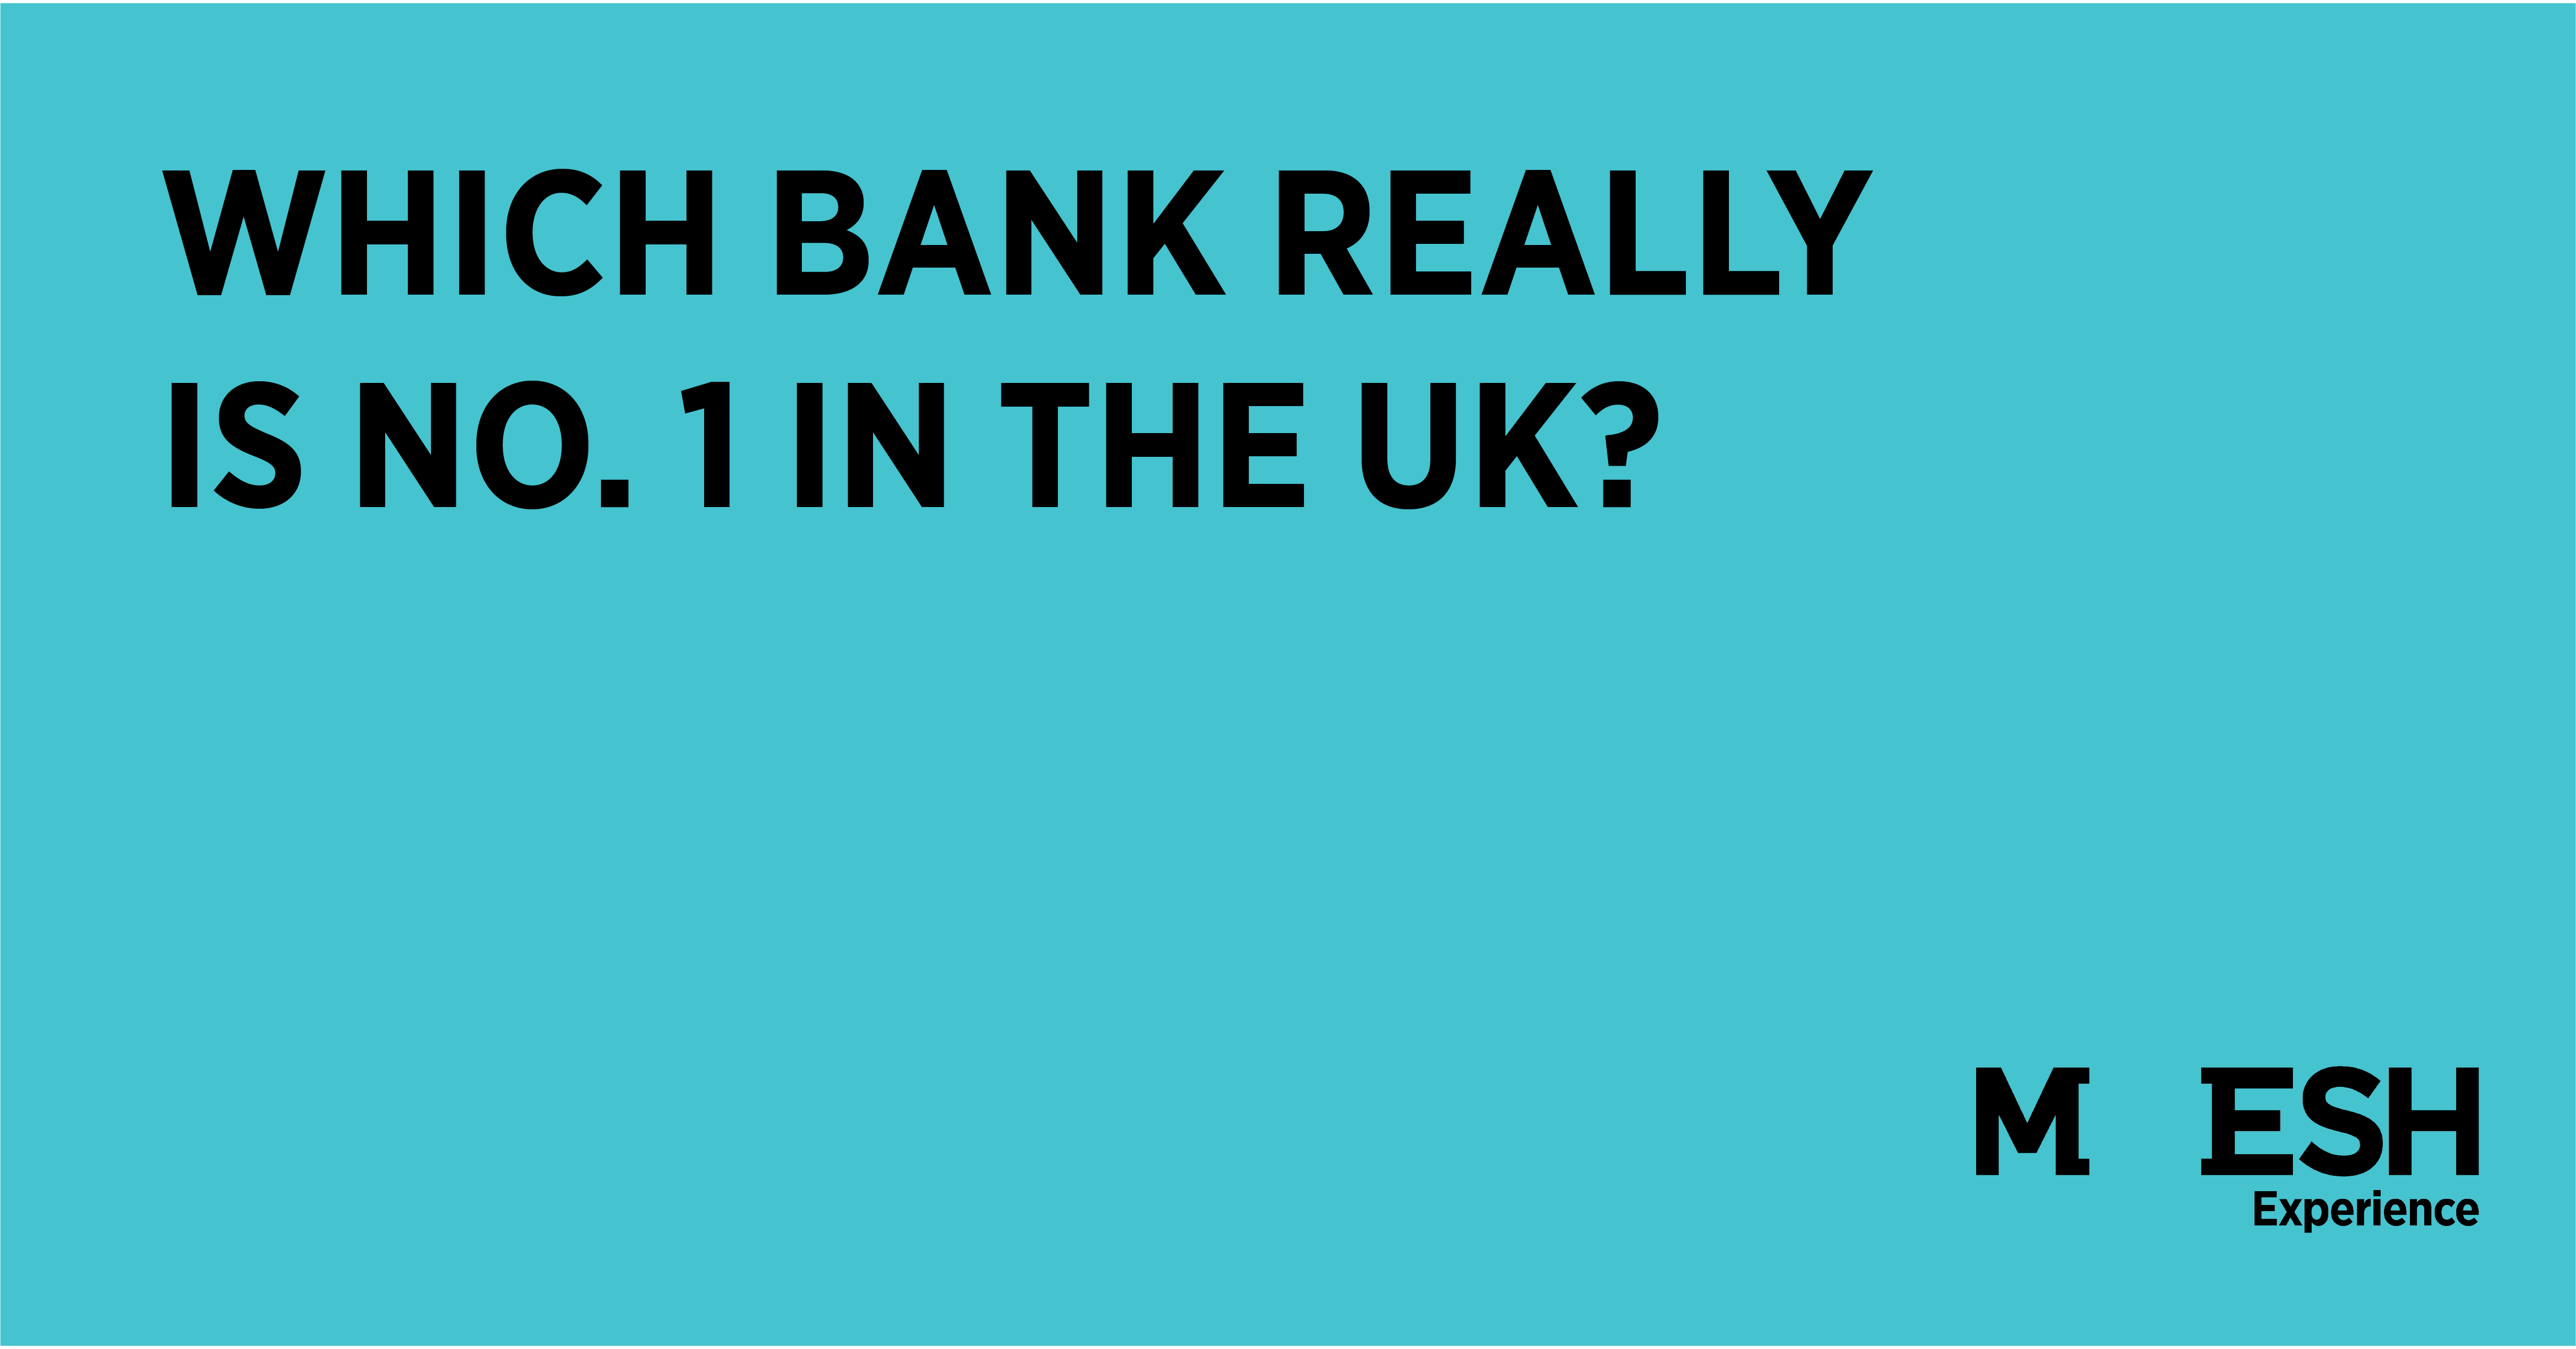 20181120-which-bank-really-is-no-1-in-the-uk